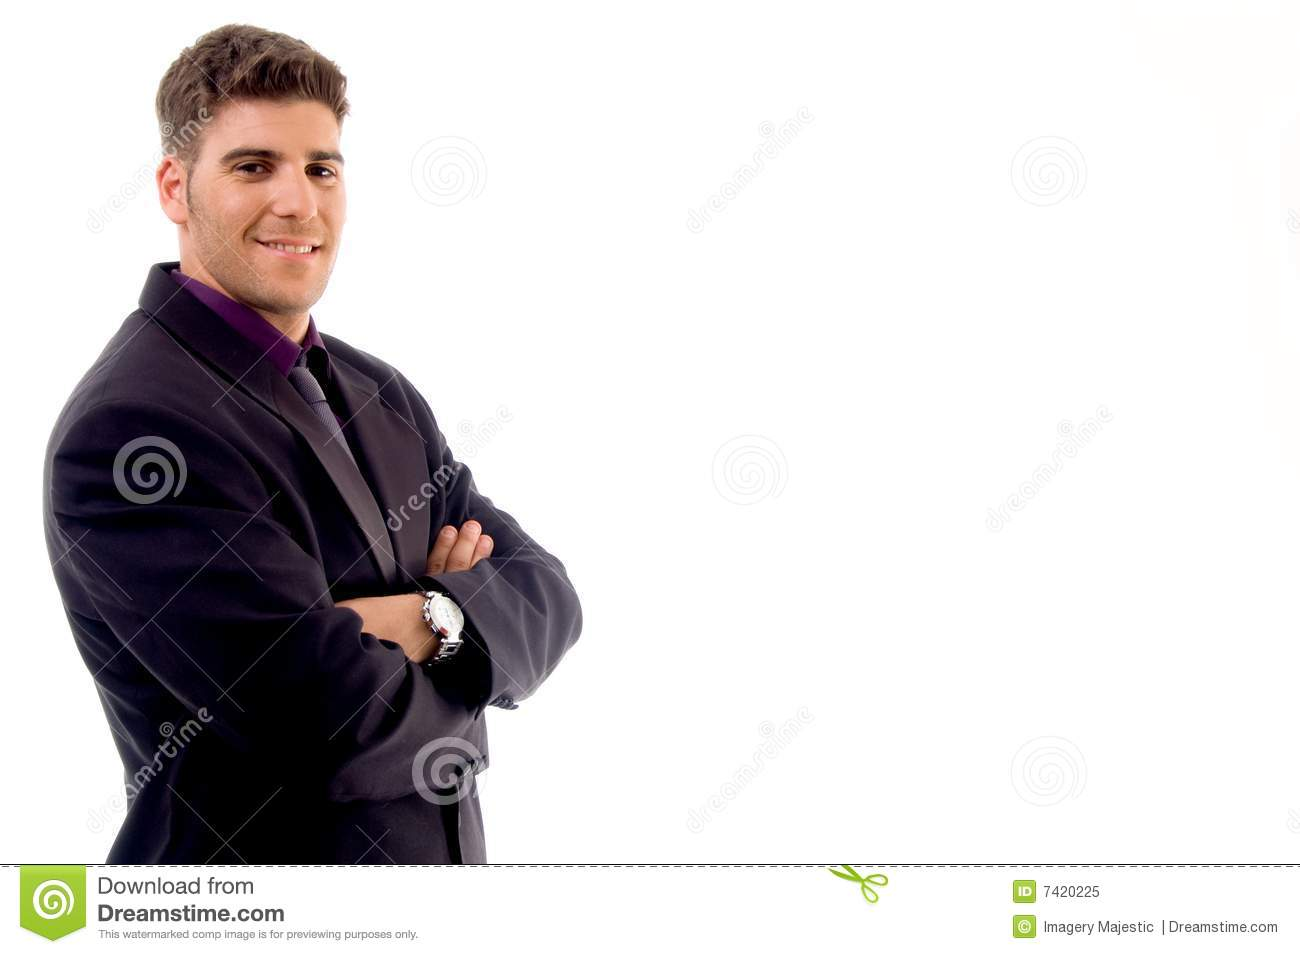 Handsome young attorney stock image. Image of clothing